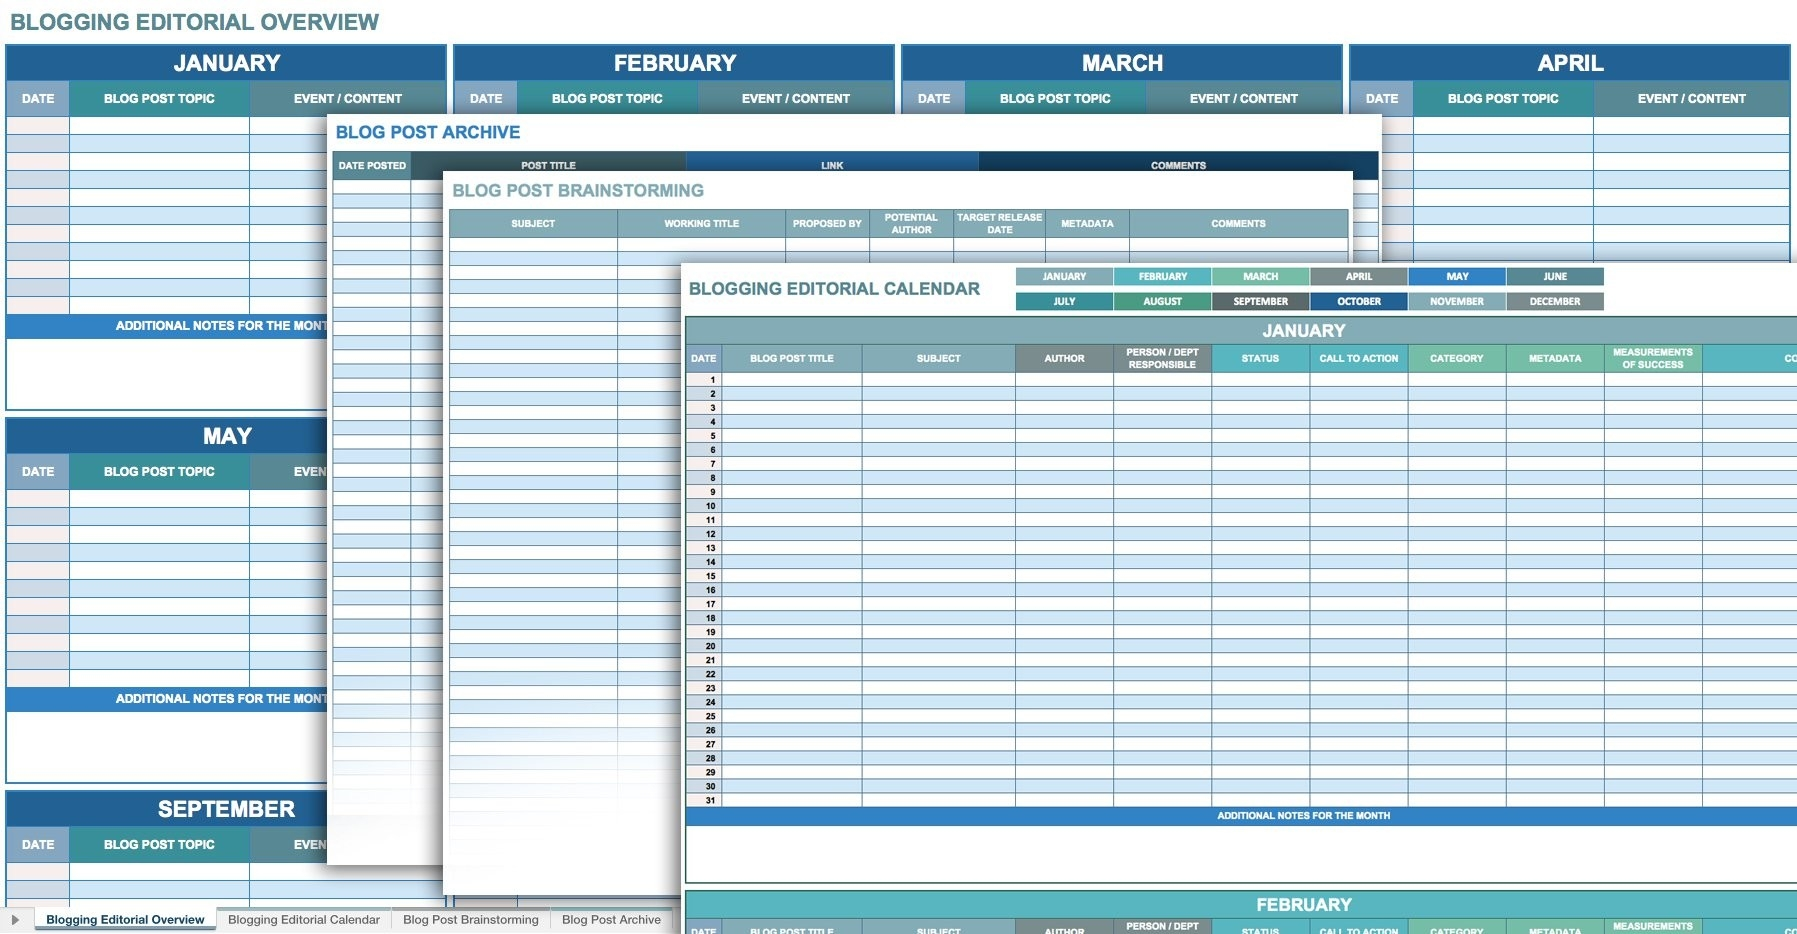 12 Free Social Media Templates | Smartsheet-Social Media Posting Schedule Template